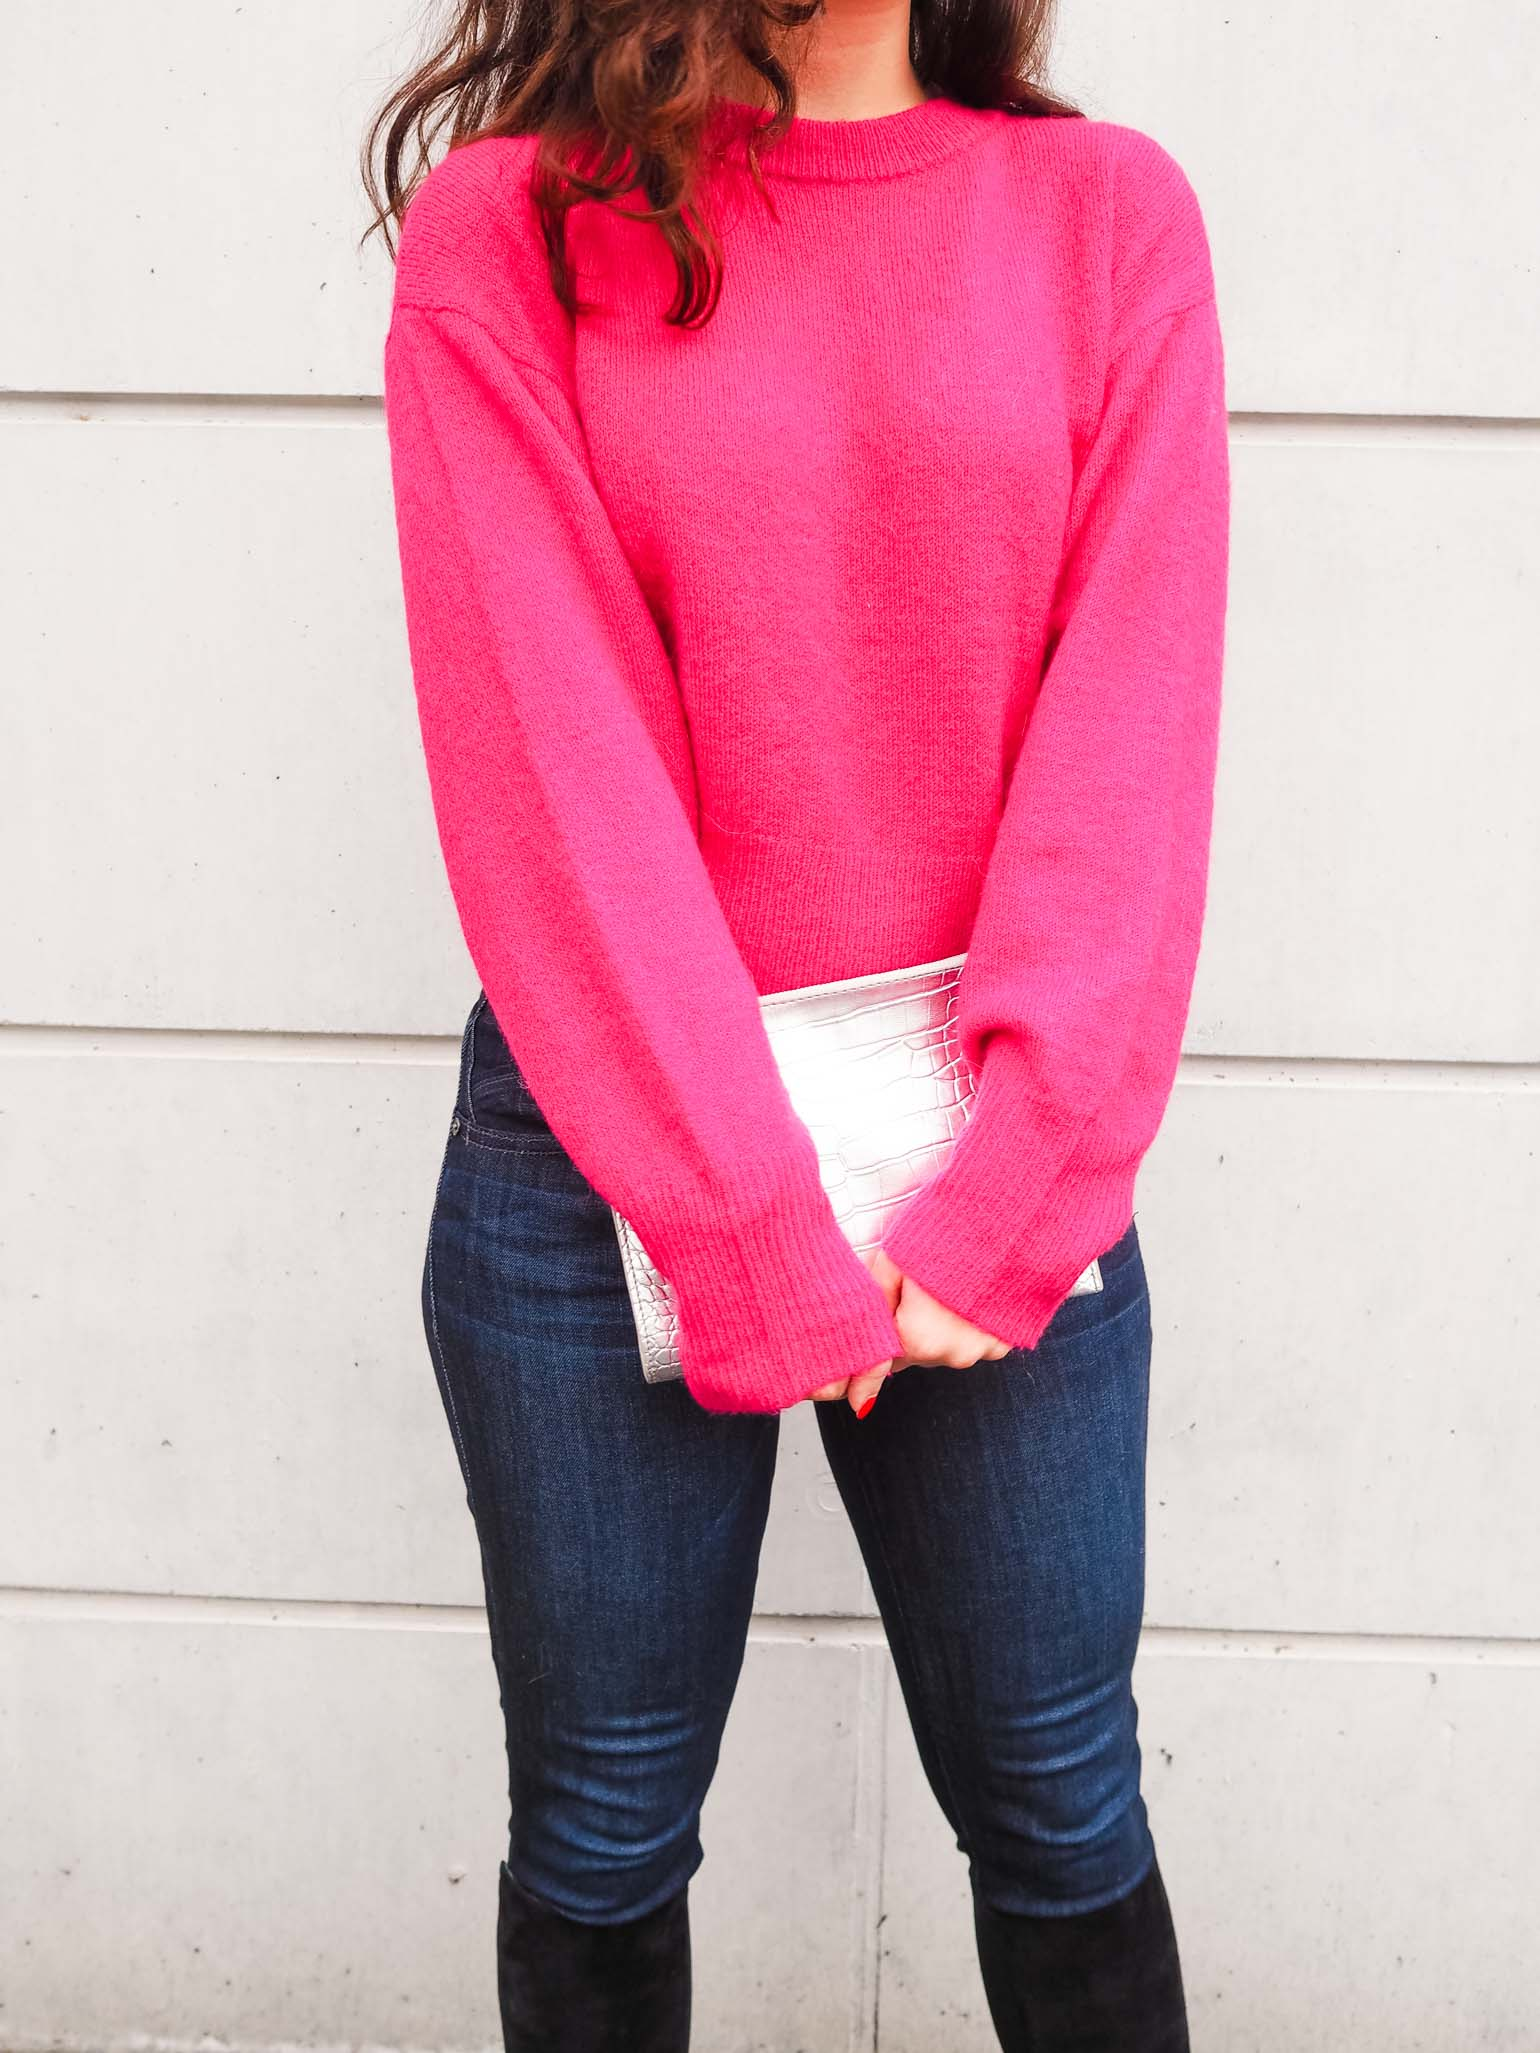 How to Tone Down A Hot Pink Sweater - The Brunette Nomad